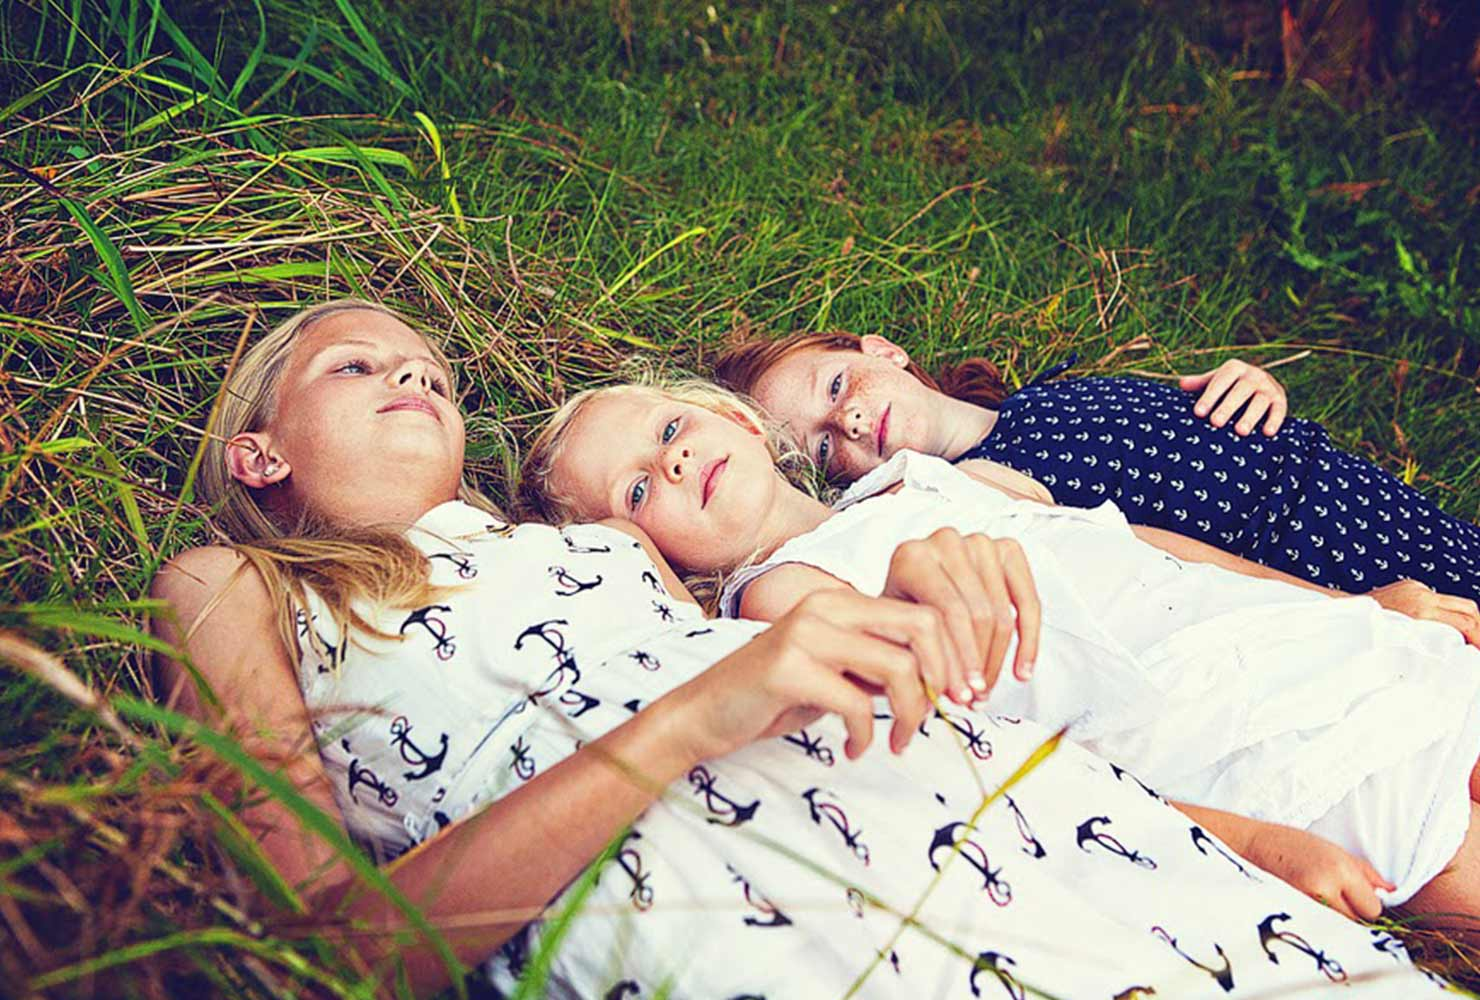 sibling photo ideas sisters in grass